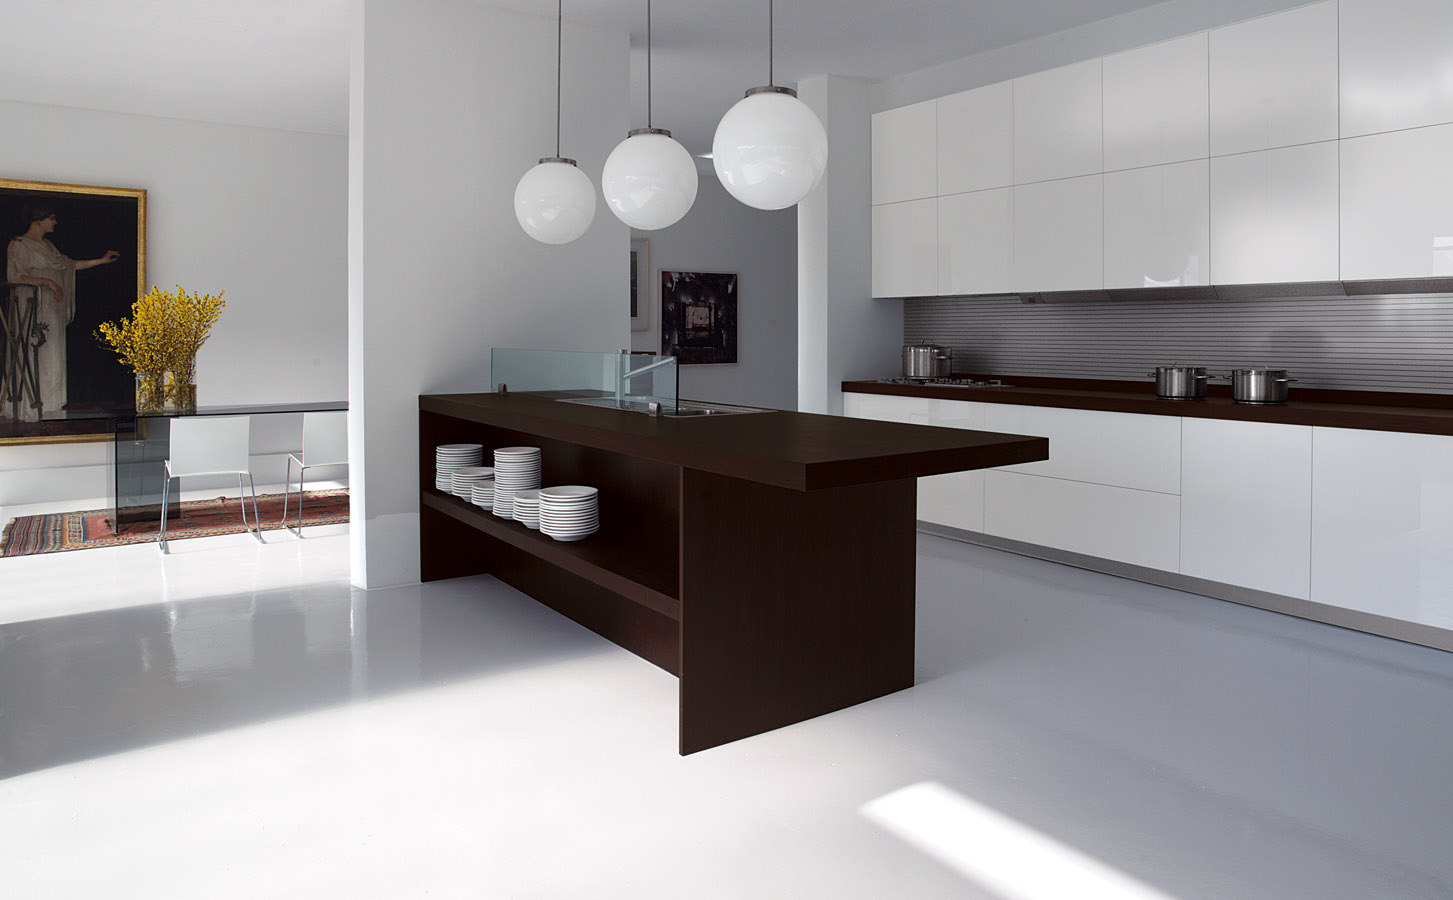 Contemporary kitchen interiors afreakatheart Kitchen interior design